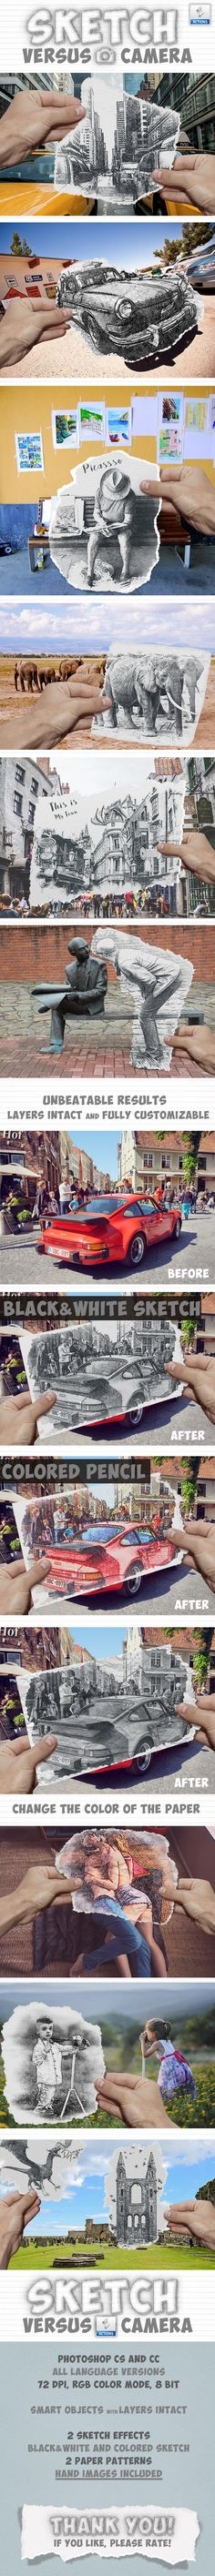 Pencil Sketch vs Camera Photo Effect Photoshop Action — Layered PSD #ben heine style #torn paper photoshop • Available here → https://graphicriver.net/item/pencil-sketch-vs-camera-photo-effect-photoshop-action/18266870?ref=pxcr